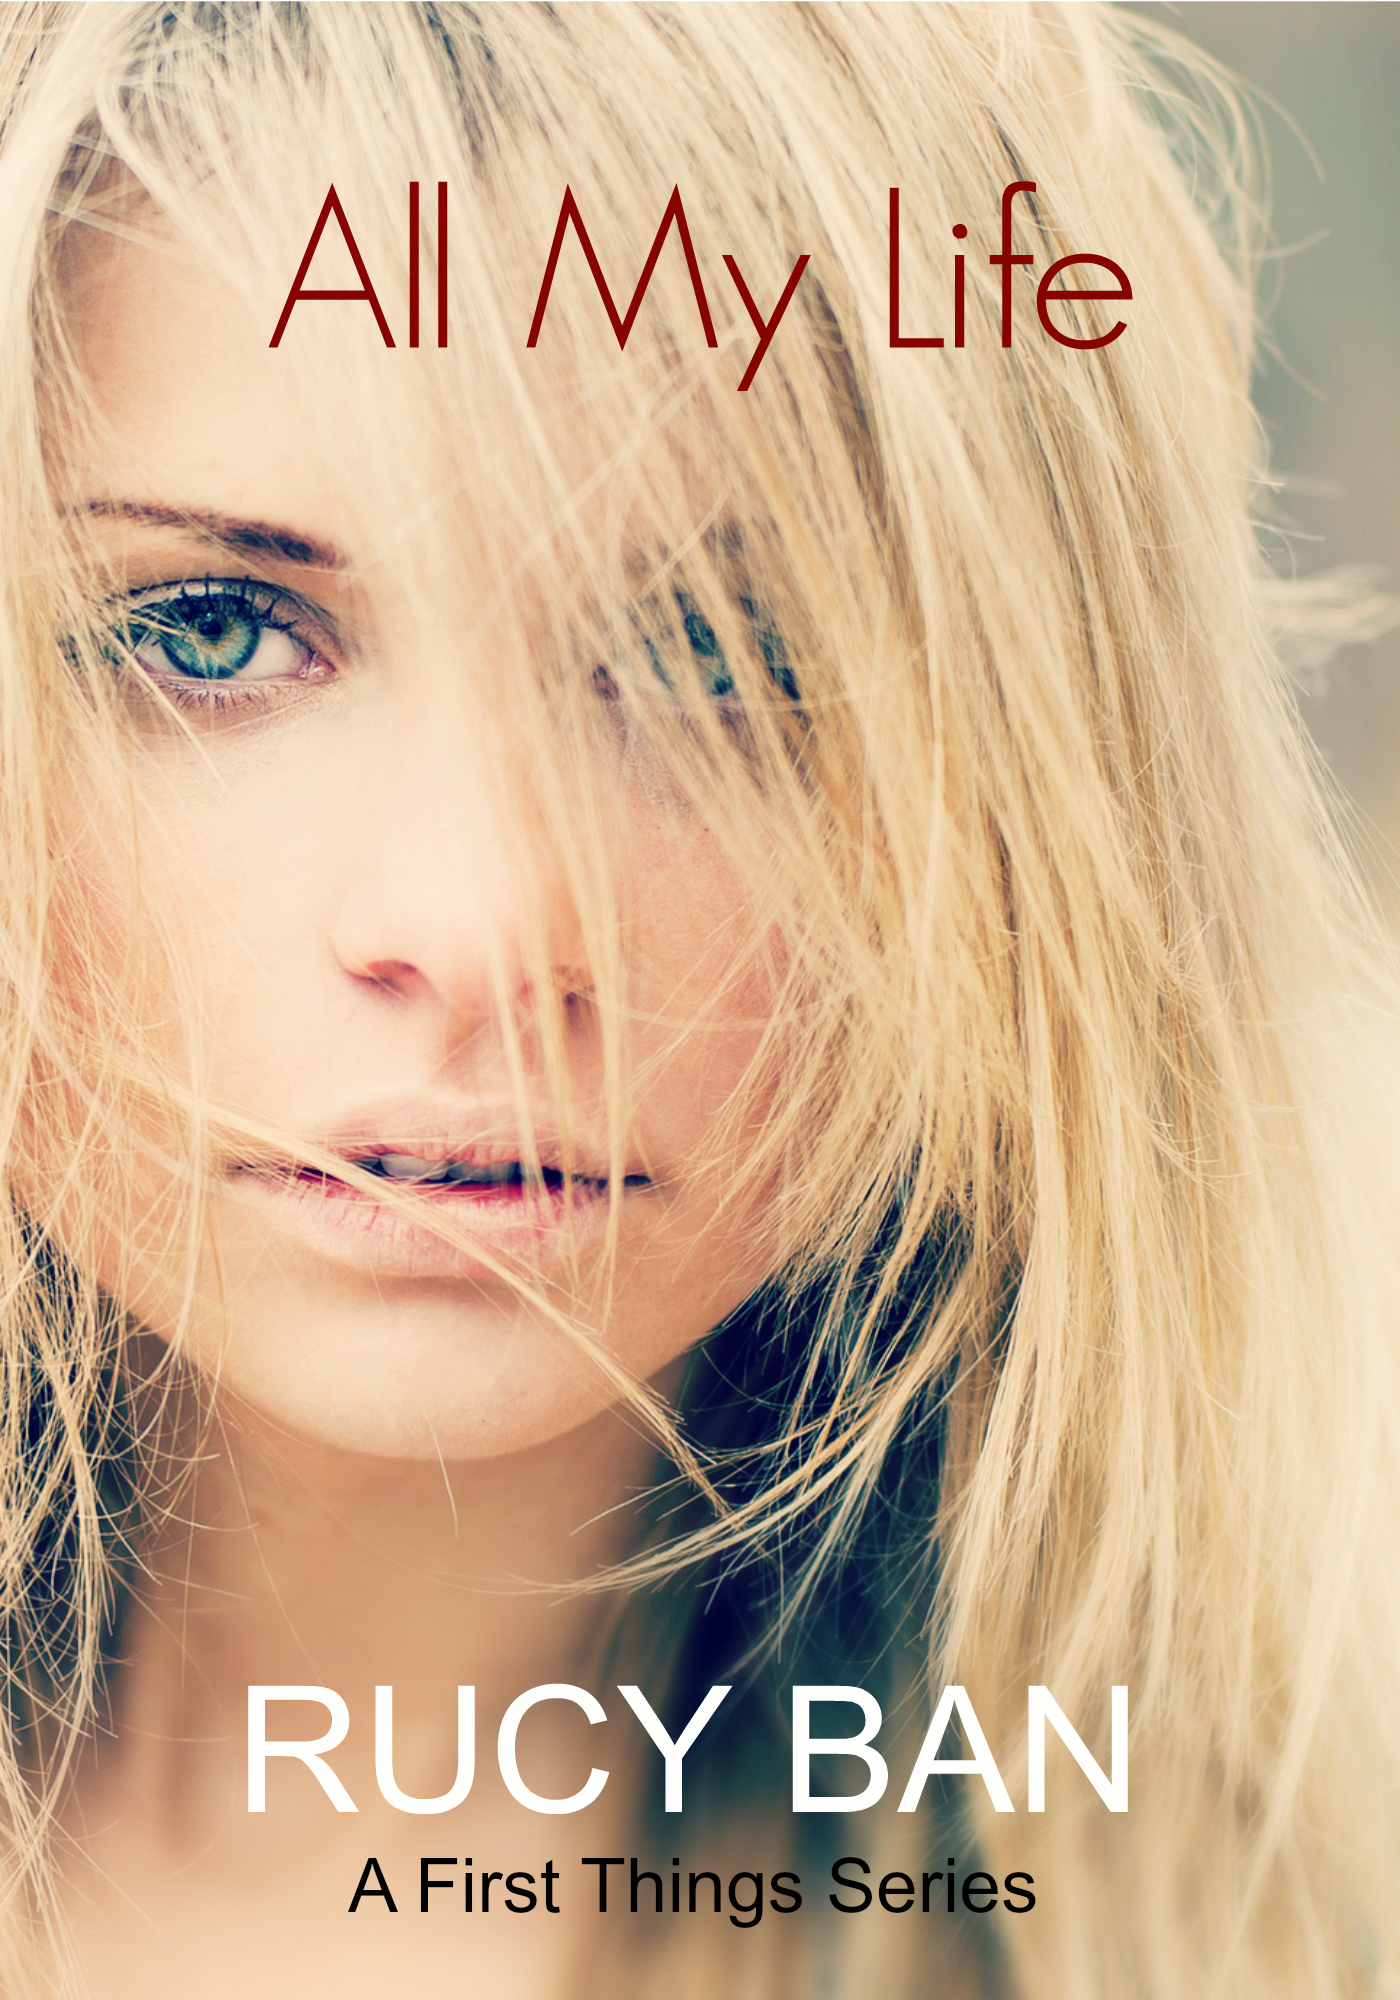 Branded Everblue Grimm Diaries Hidden Lathan All My Life